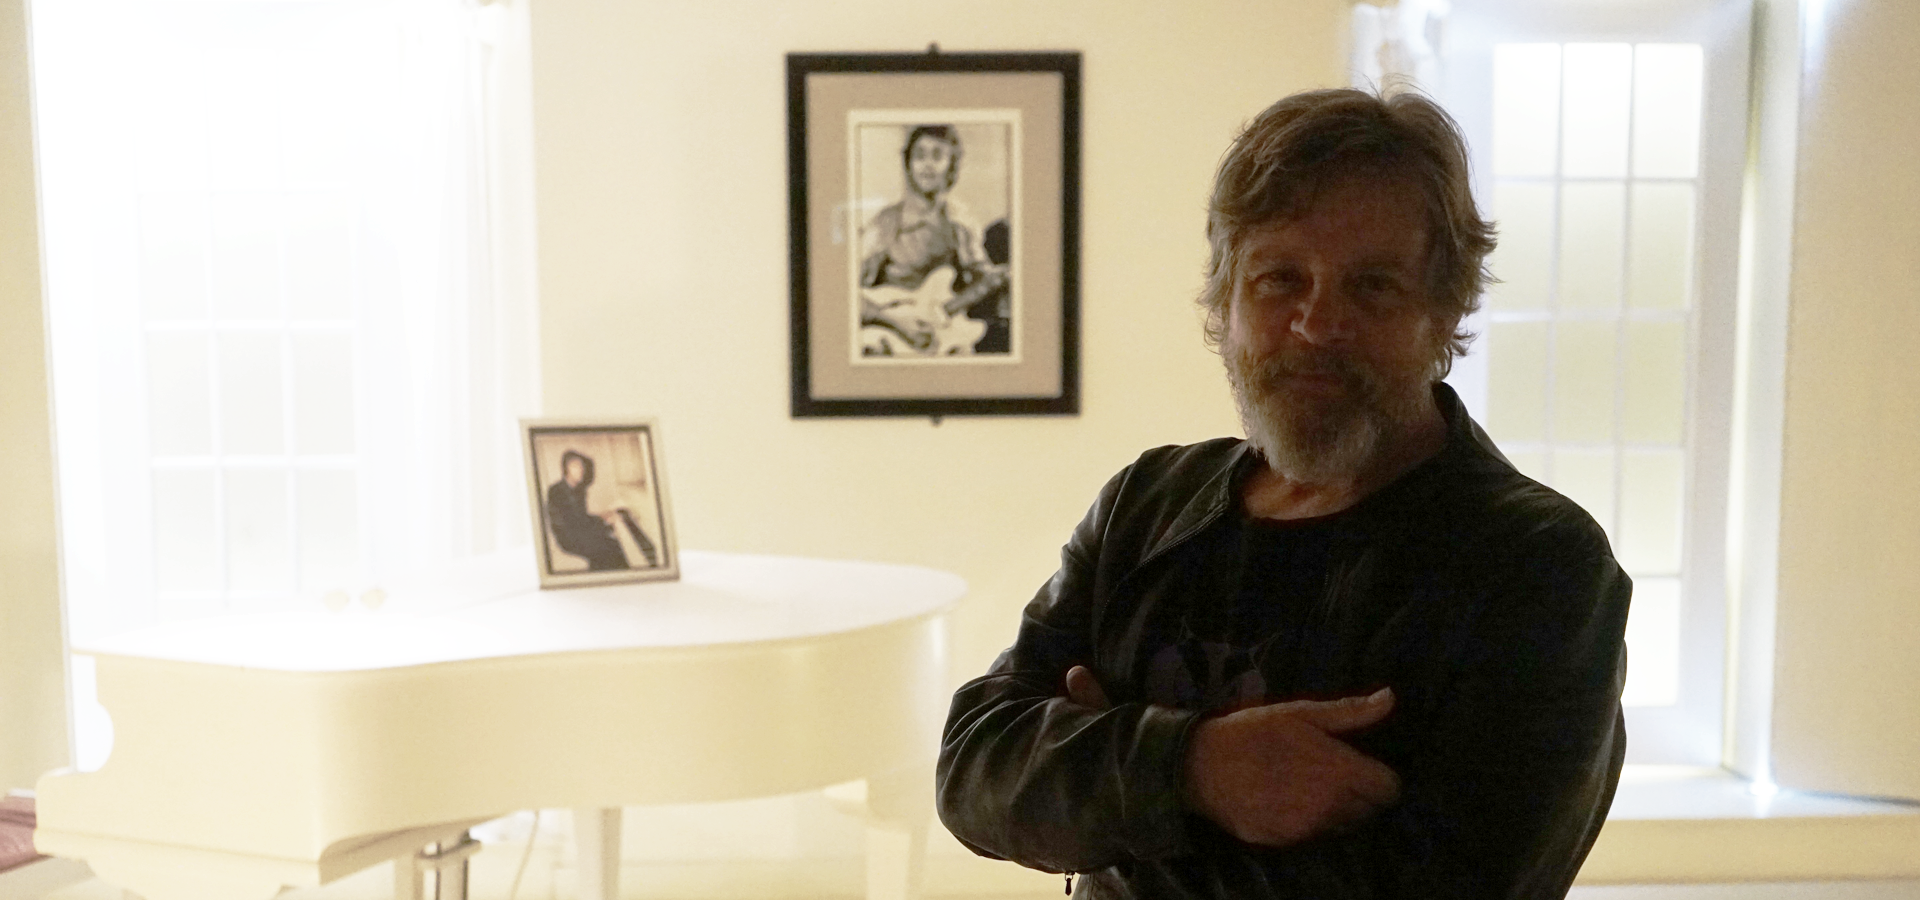 Legendary Star Wars actor Mark Hamill visits the Beatles Story